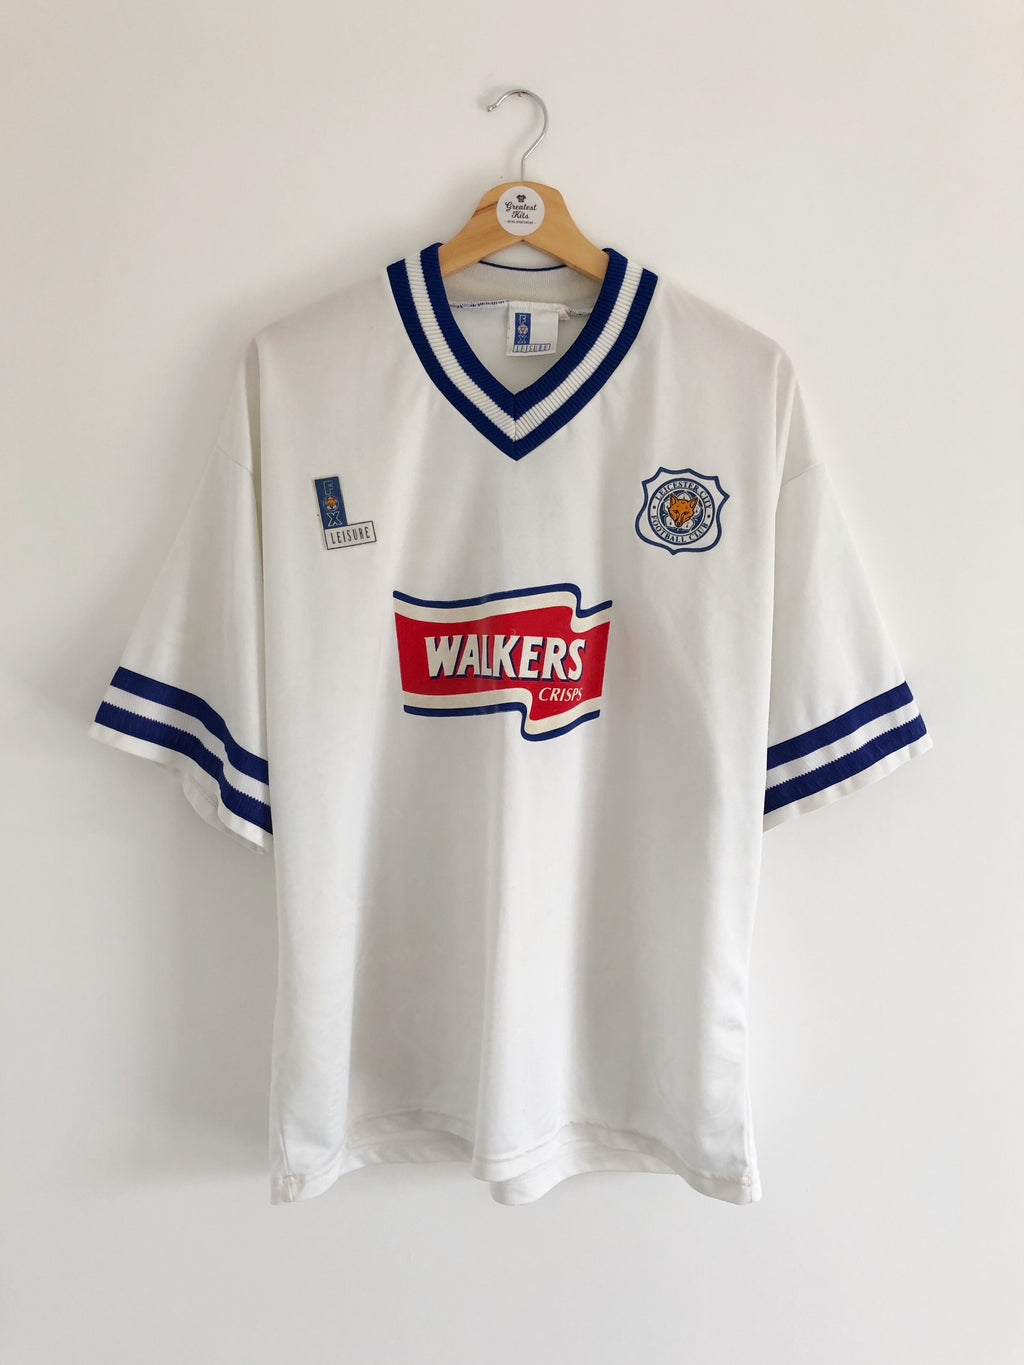 1996/98 Leicester Away Shirt #2 (L) 8.5/10